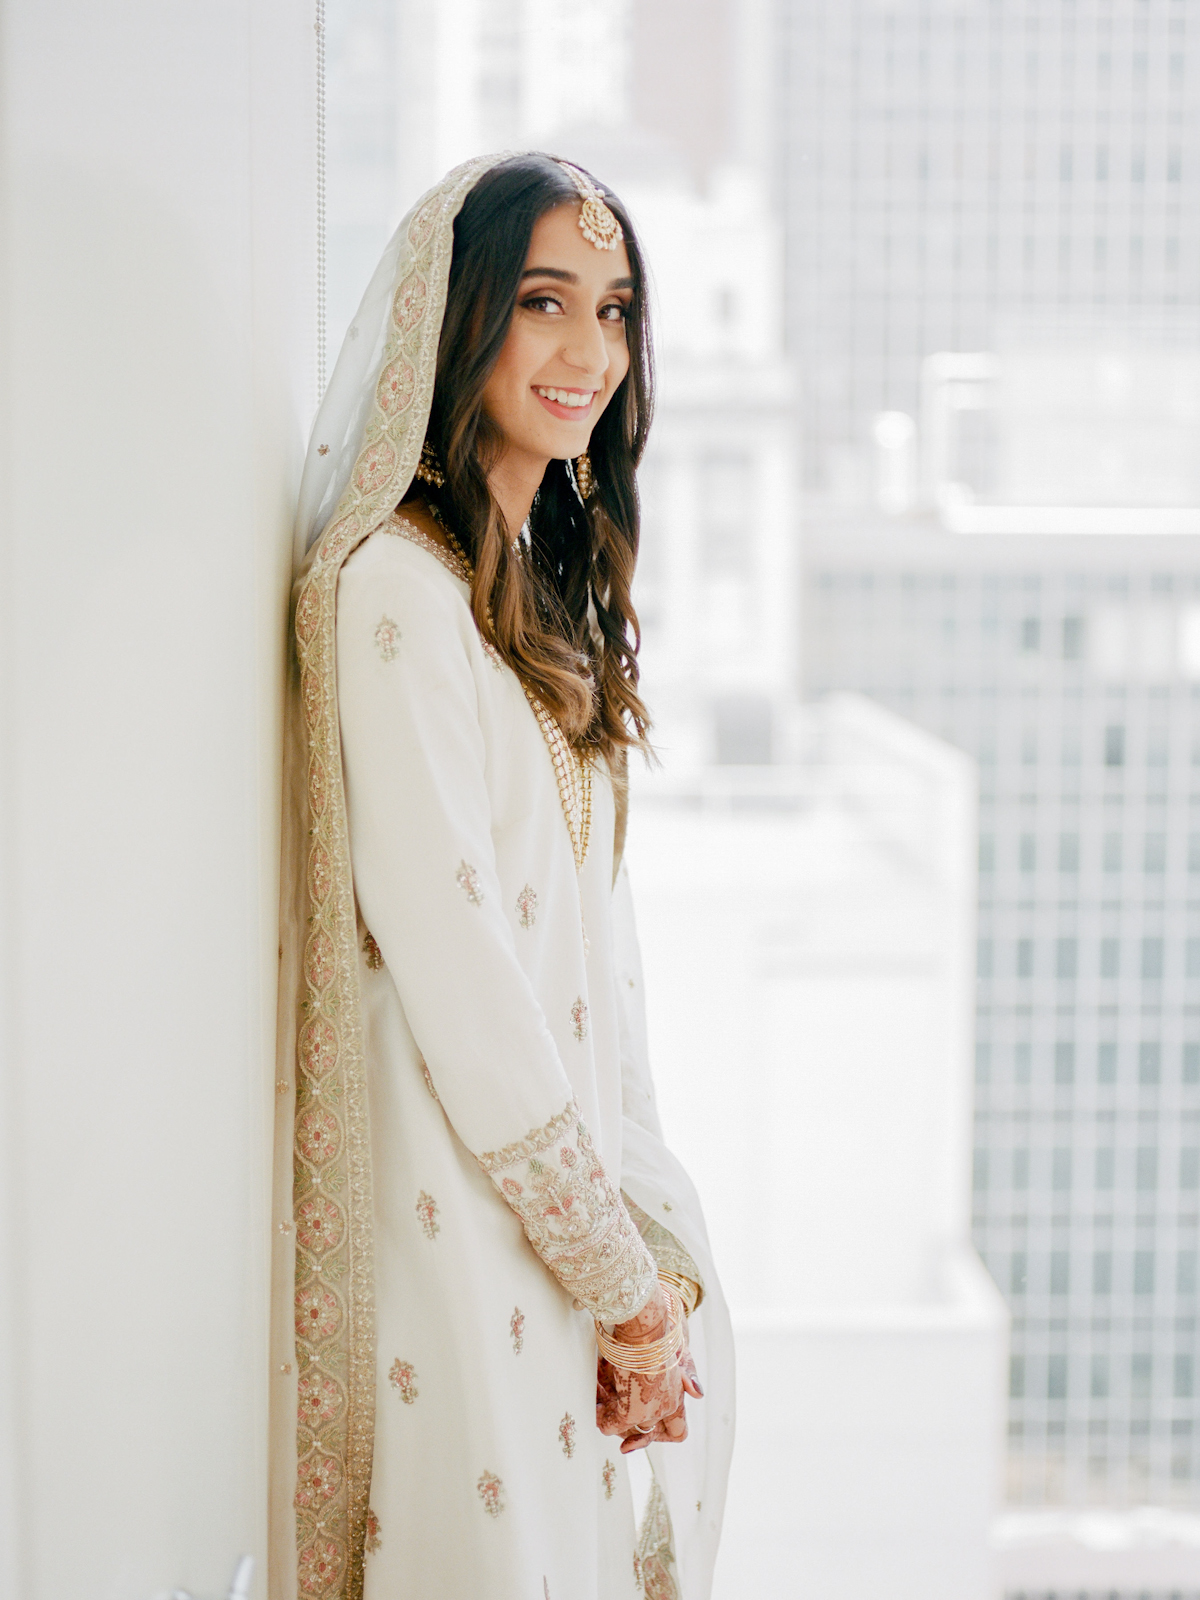 South asian bride at a Rainbow Room wedding